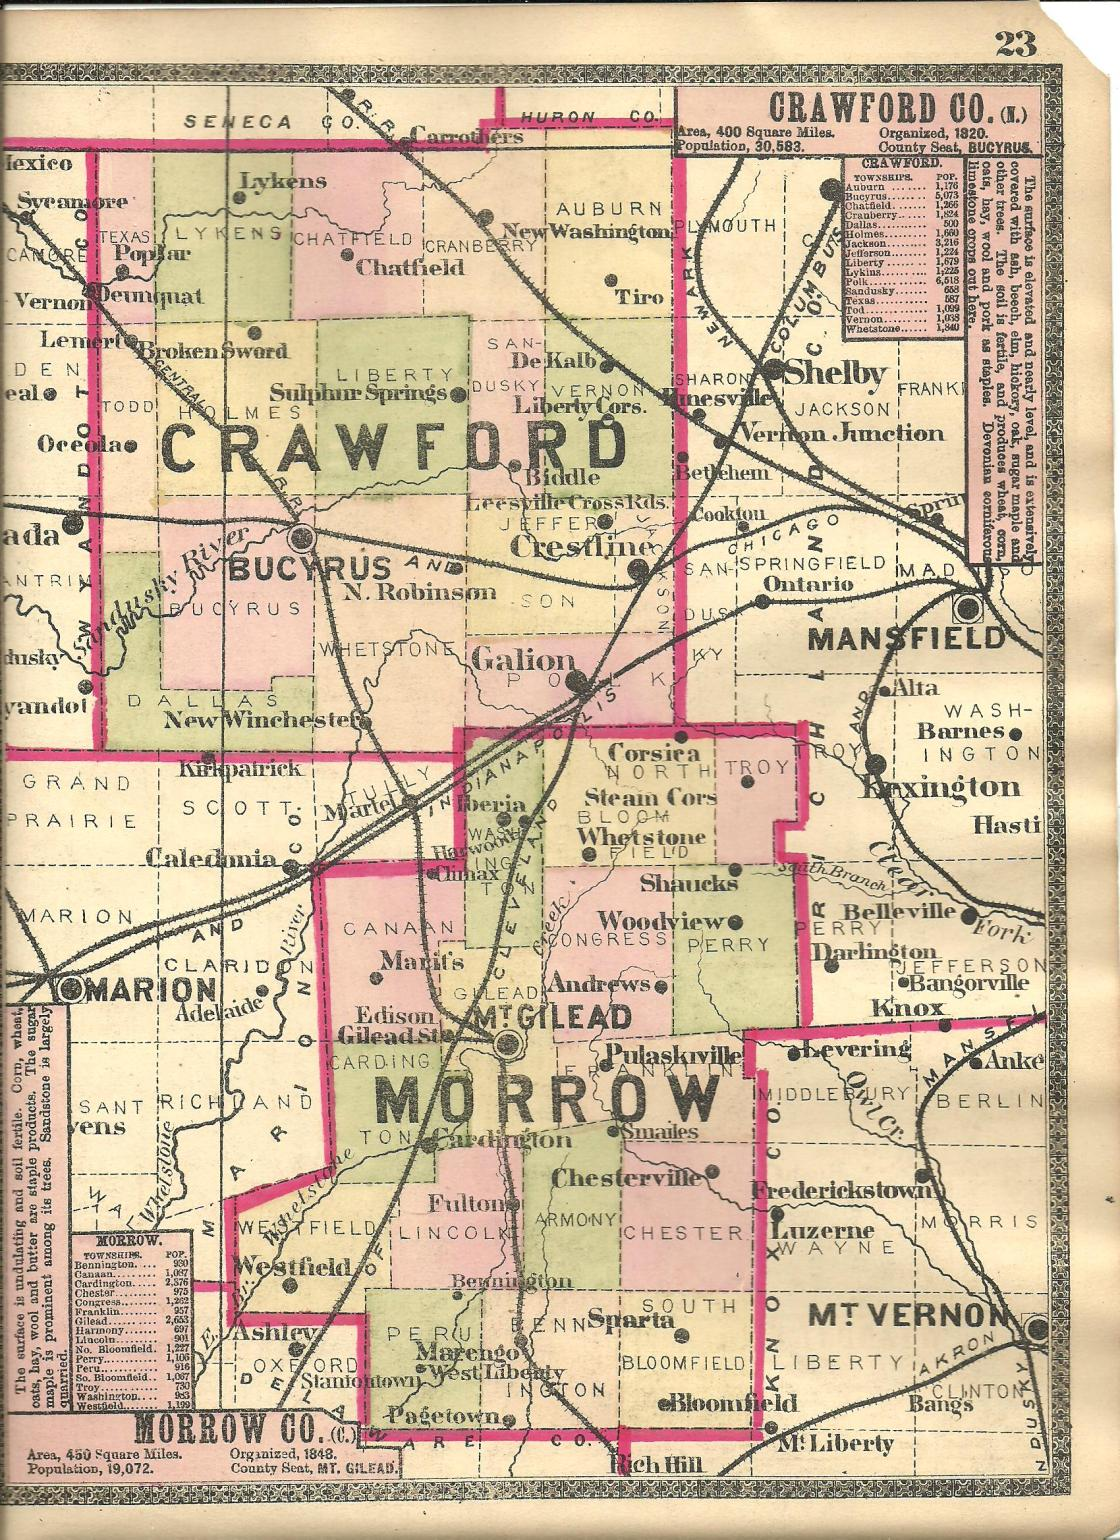 Crawford County Ohio Ghost Town Exploration Co